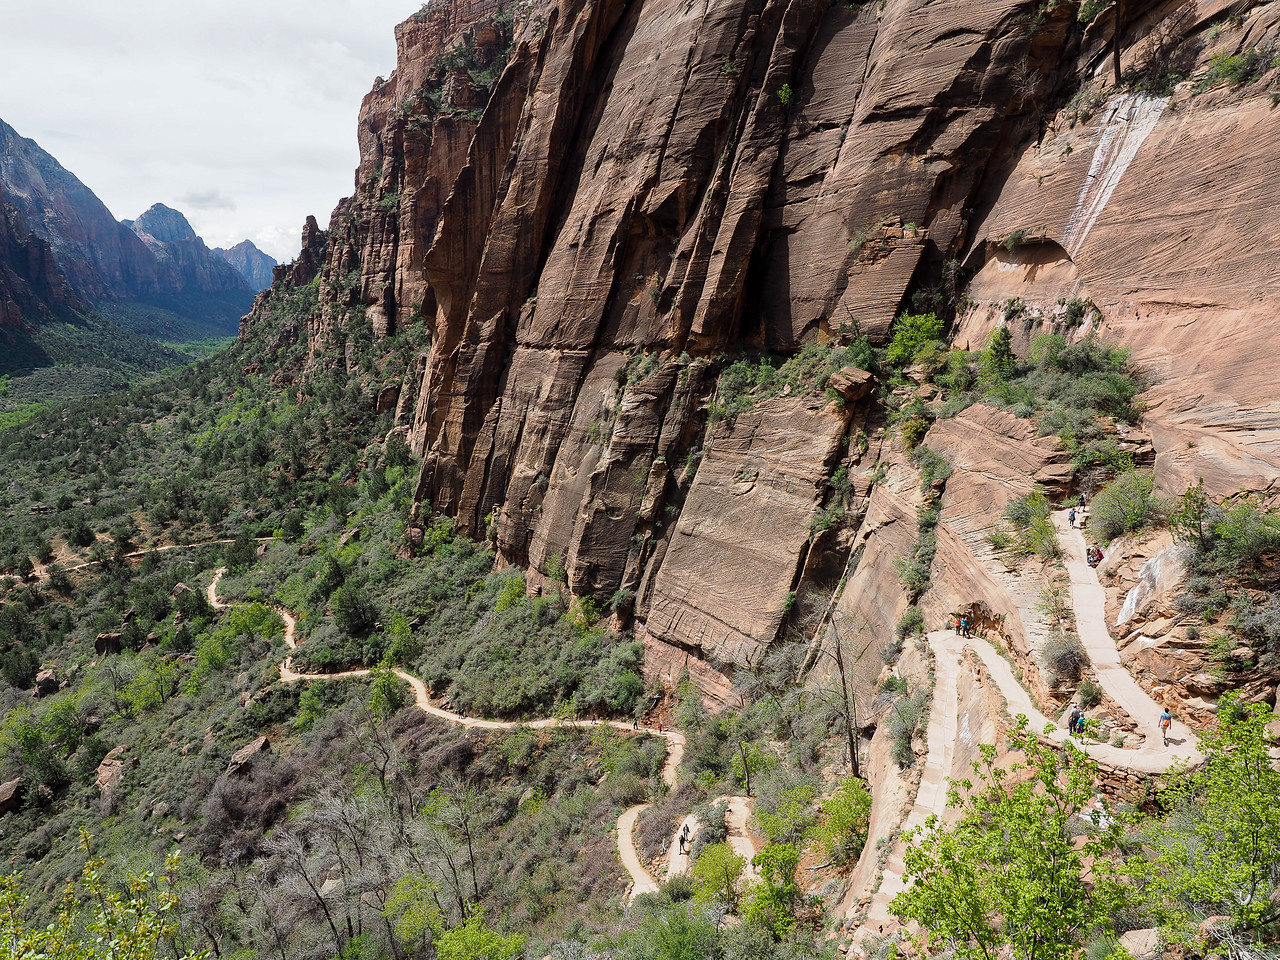 West Rim Trail at Zion National Park